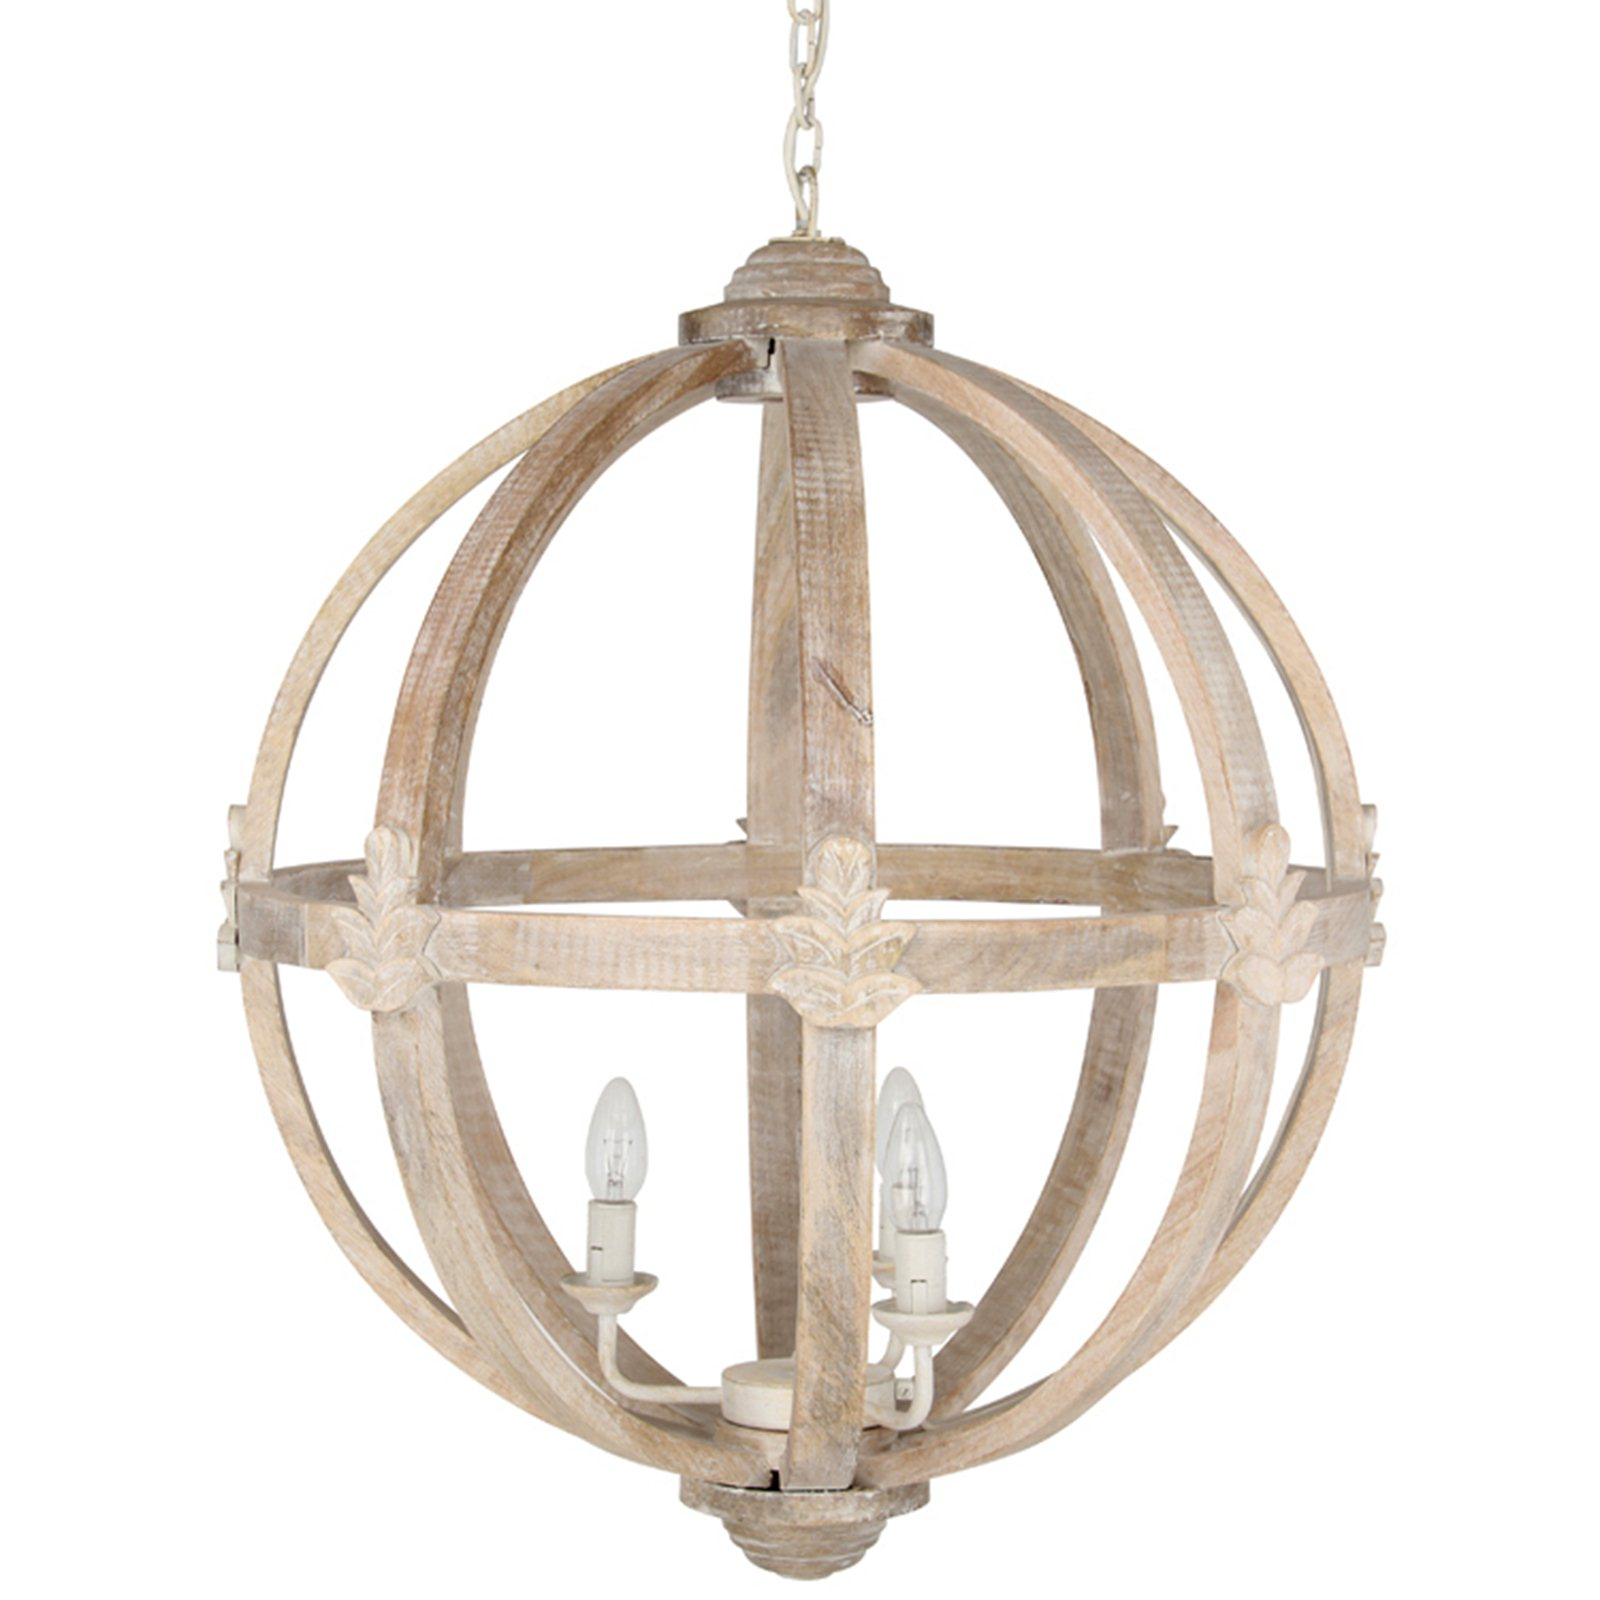 HICKS And HICKS Dene Round Wood Pendant Light